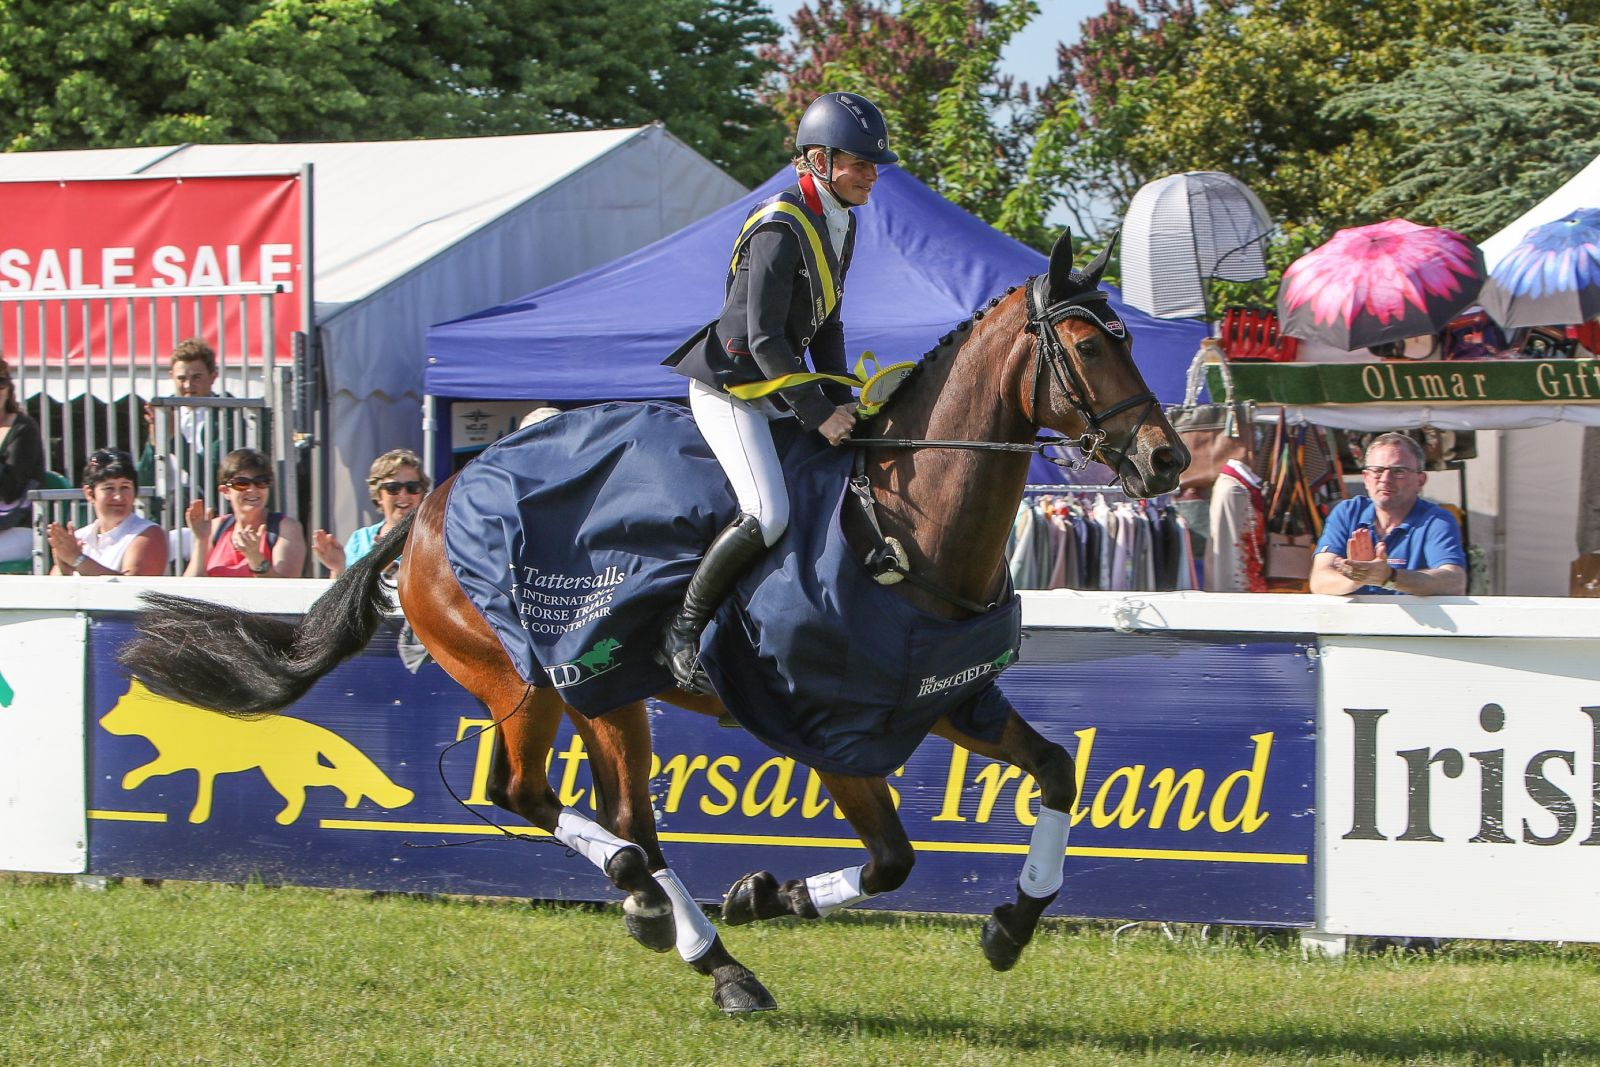 Tattersalls International H.T. is Canceled - Eventing Nation - Three-Day Eventing News, Results, Videos, and Commentary